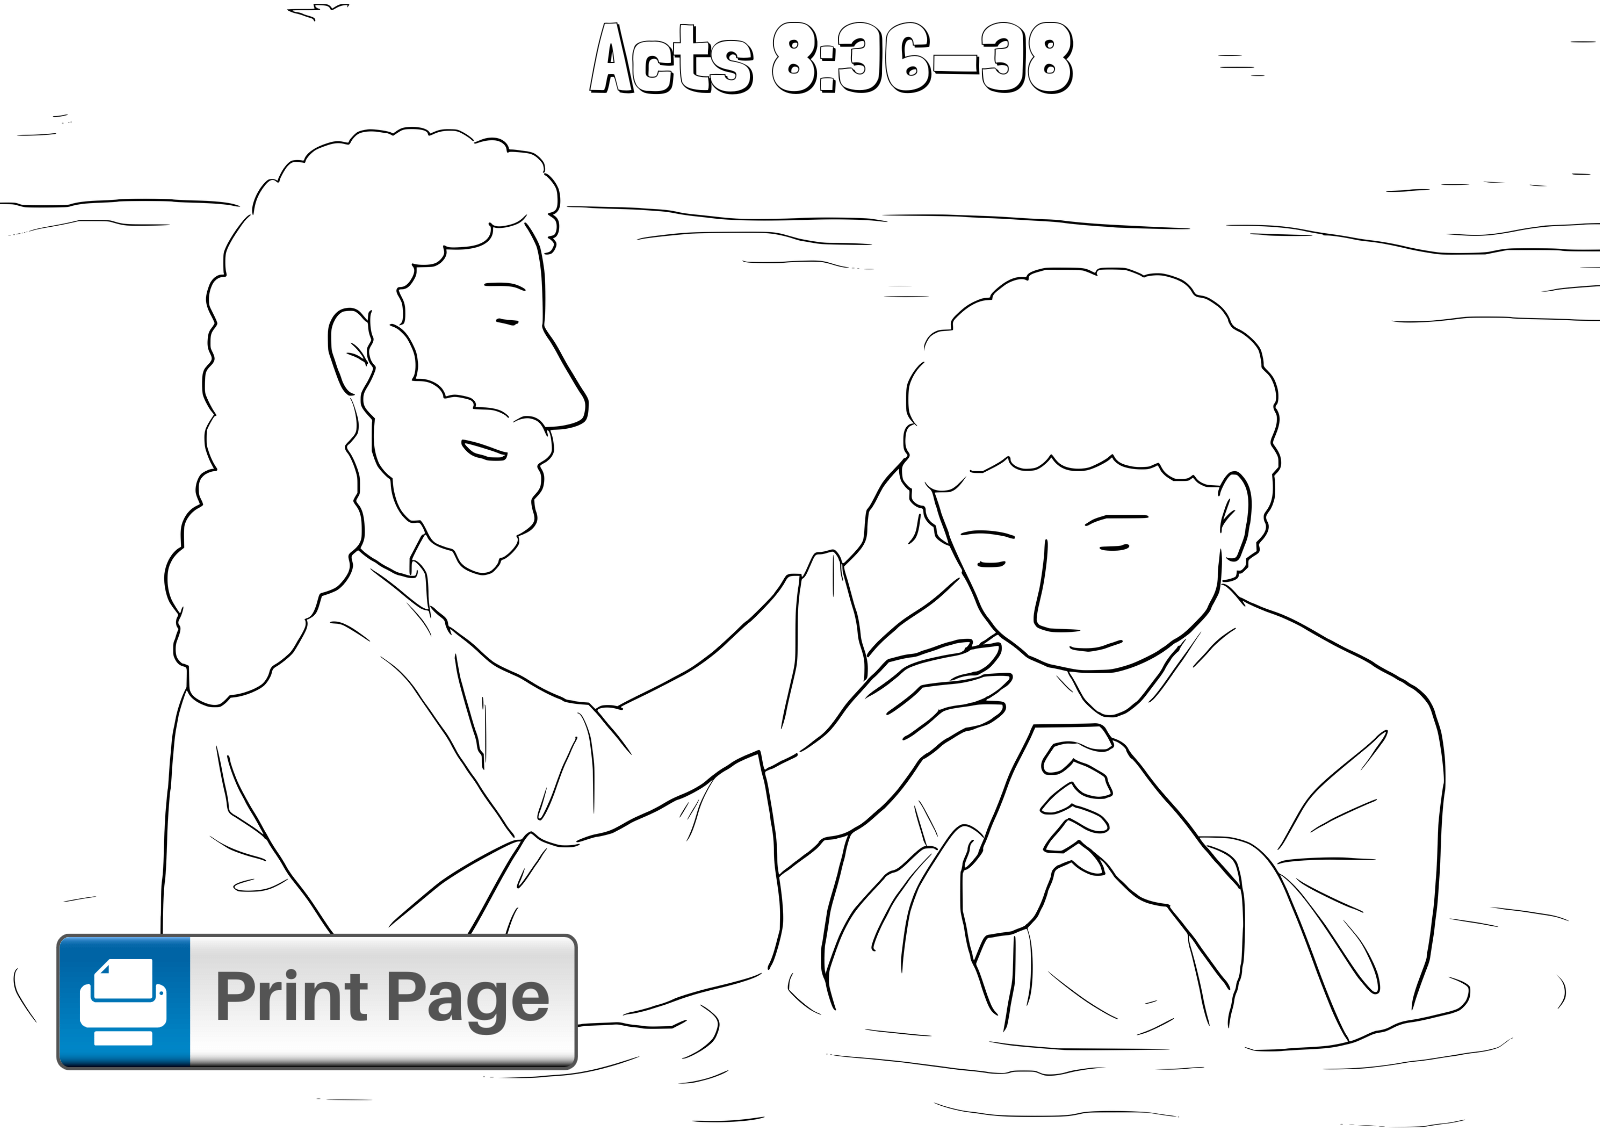 Philip And The Ethiopian Coloring Pages For Kids Printable Pdfs Connectus